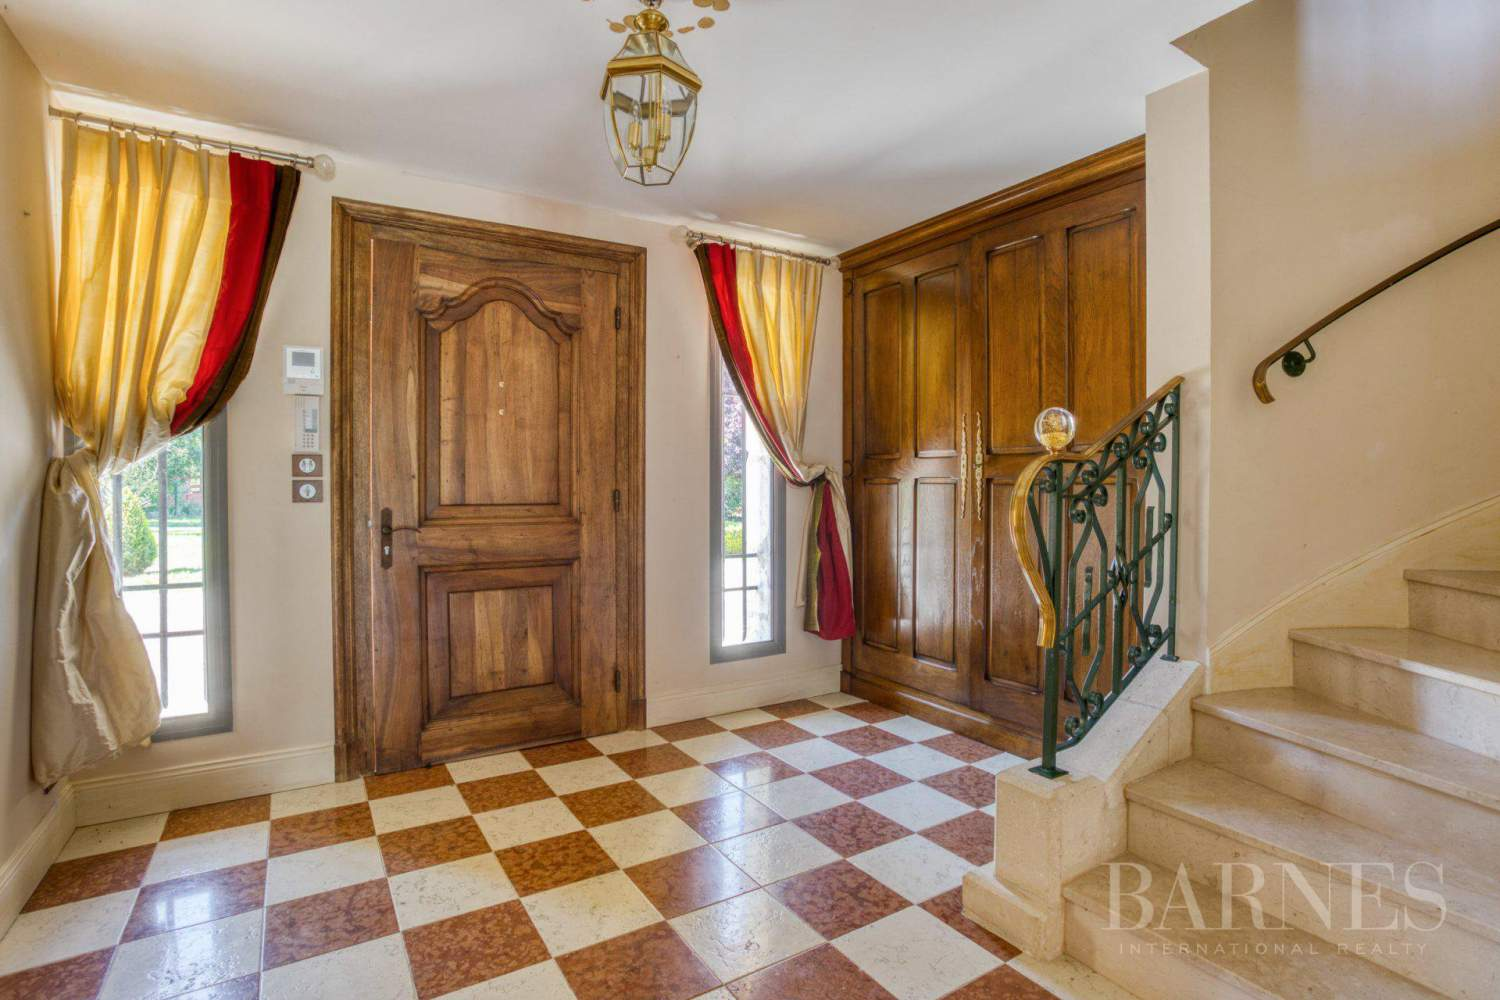 For sale - Charming and high-quality property - Close to Deauville picture 2